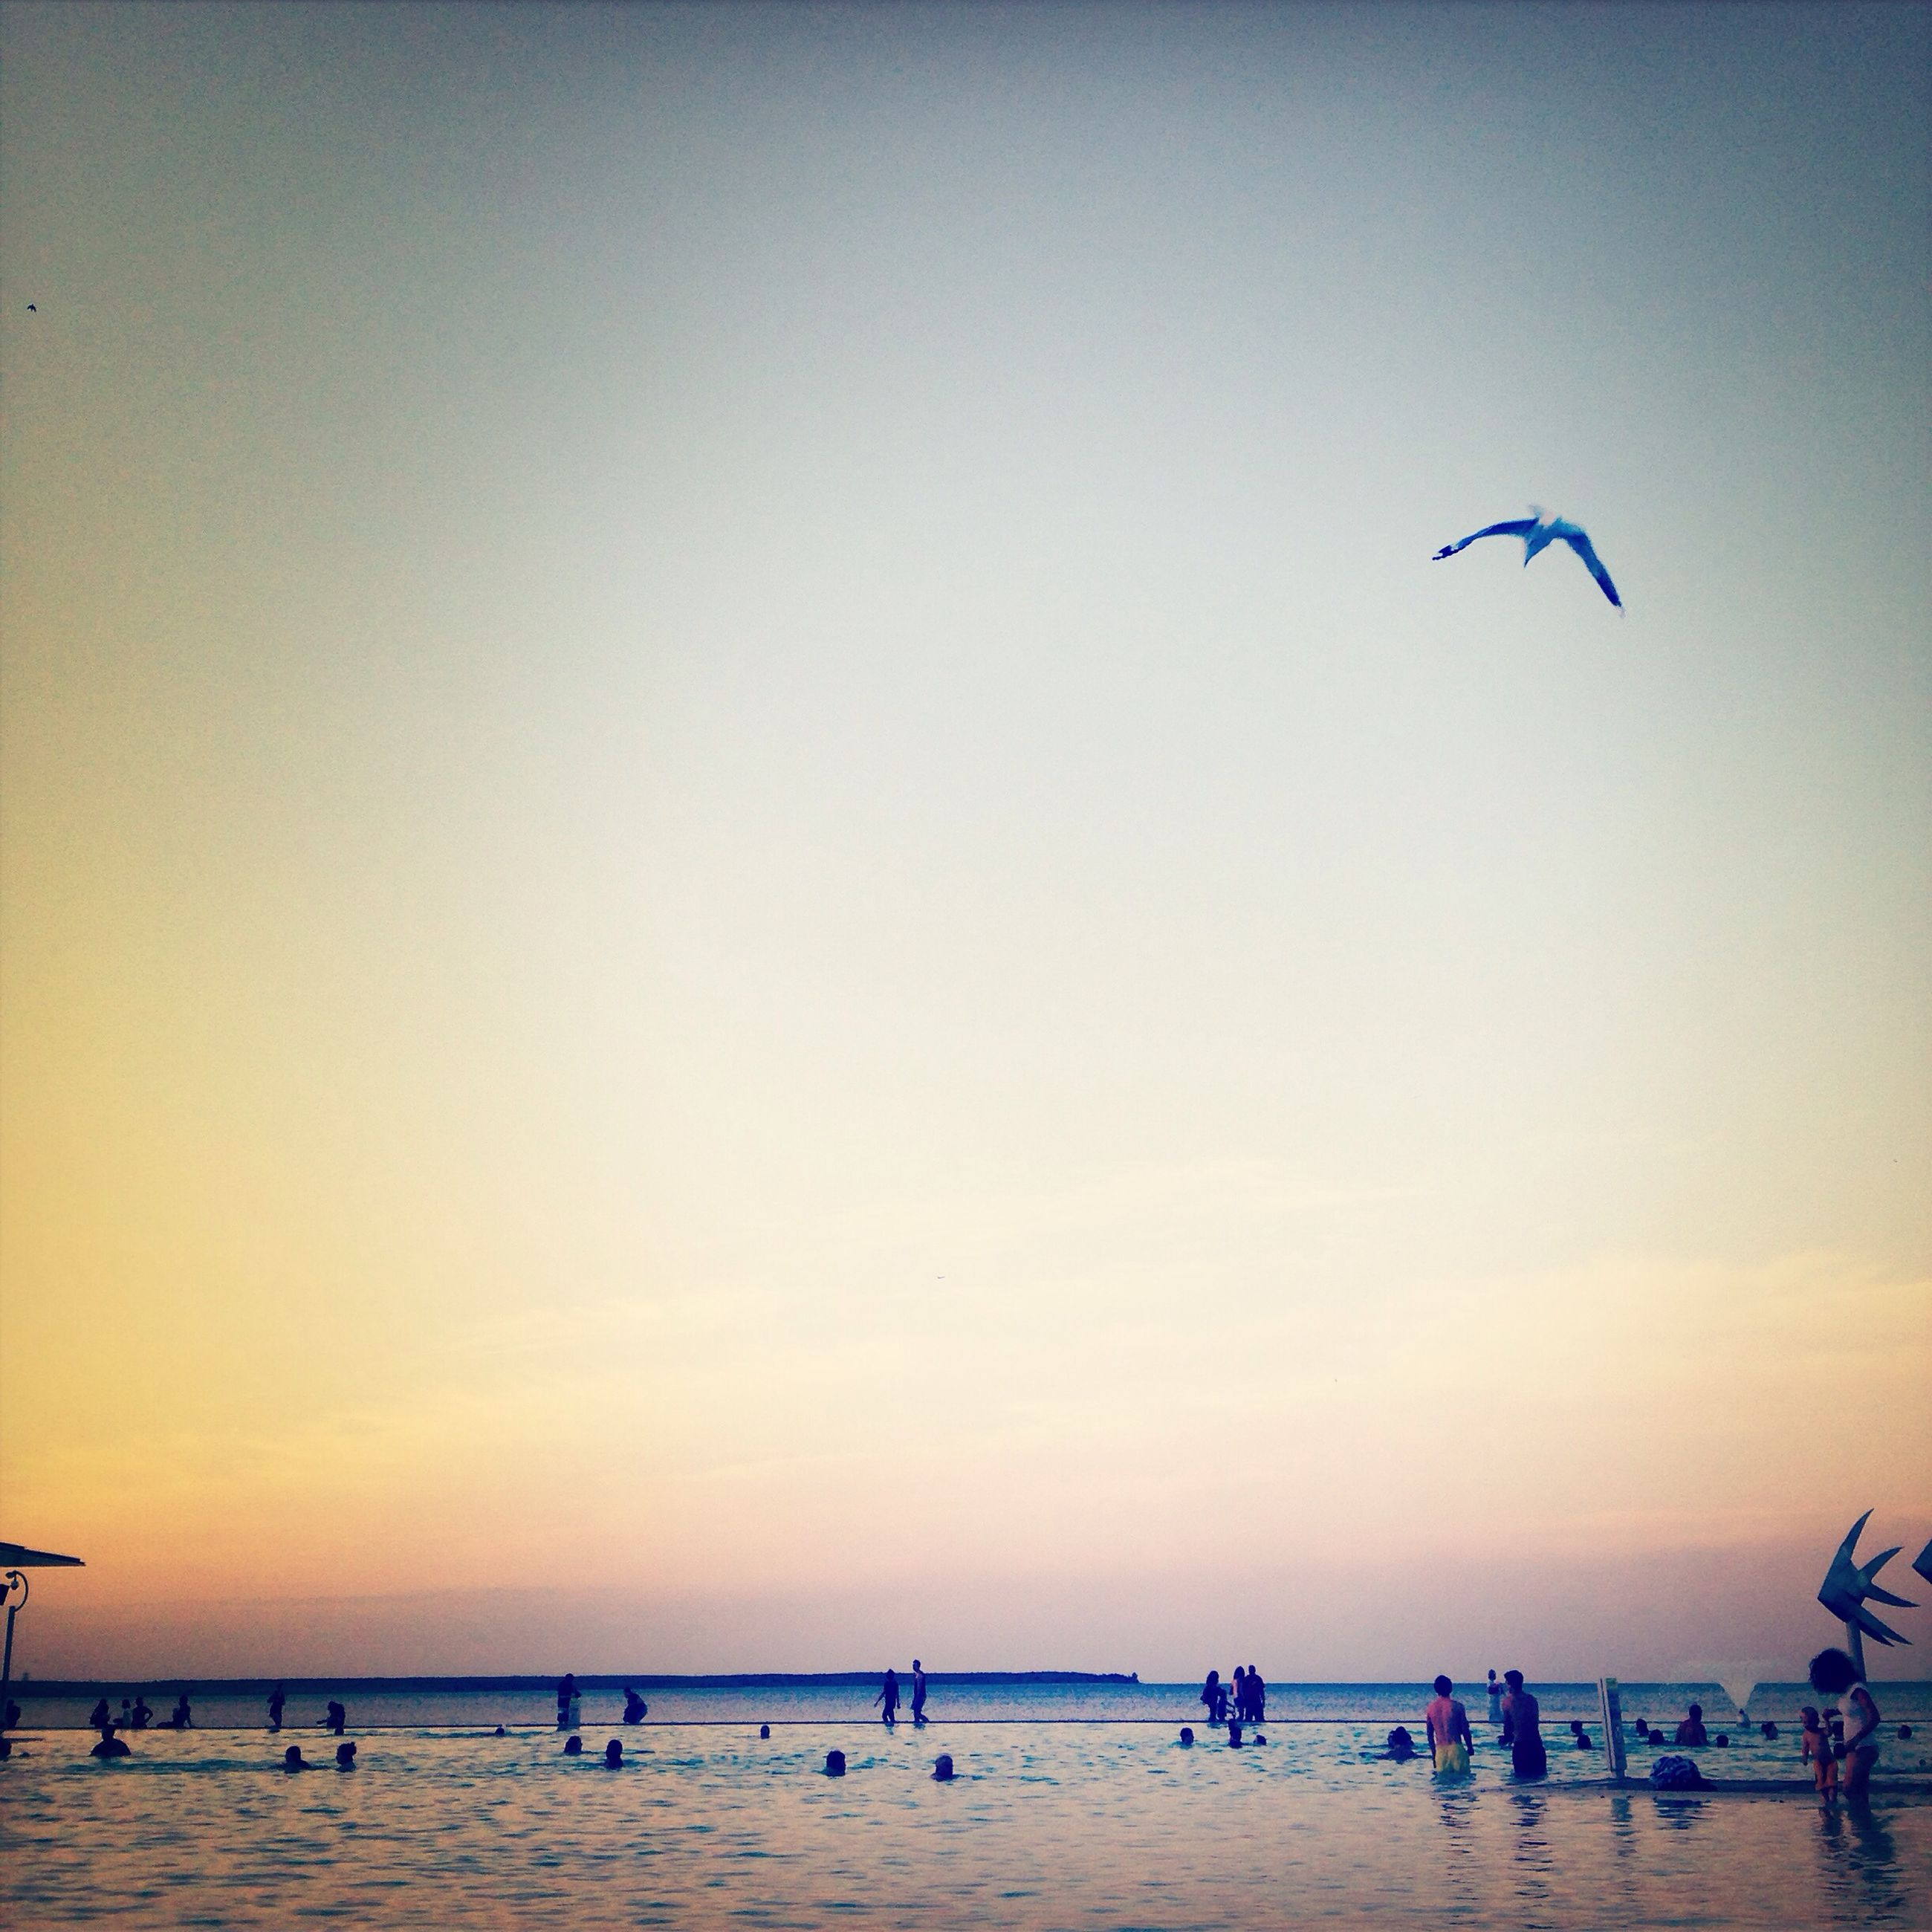 sea, horizon over water, flying, beach, water, bird, sky, animal themes, vacations, scenics, leisure activity, sunset, tranquility, beauty in nature, mid-air, sand, tranquil scene, nature, clear sky